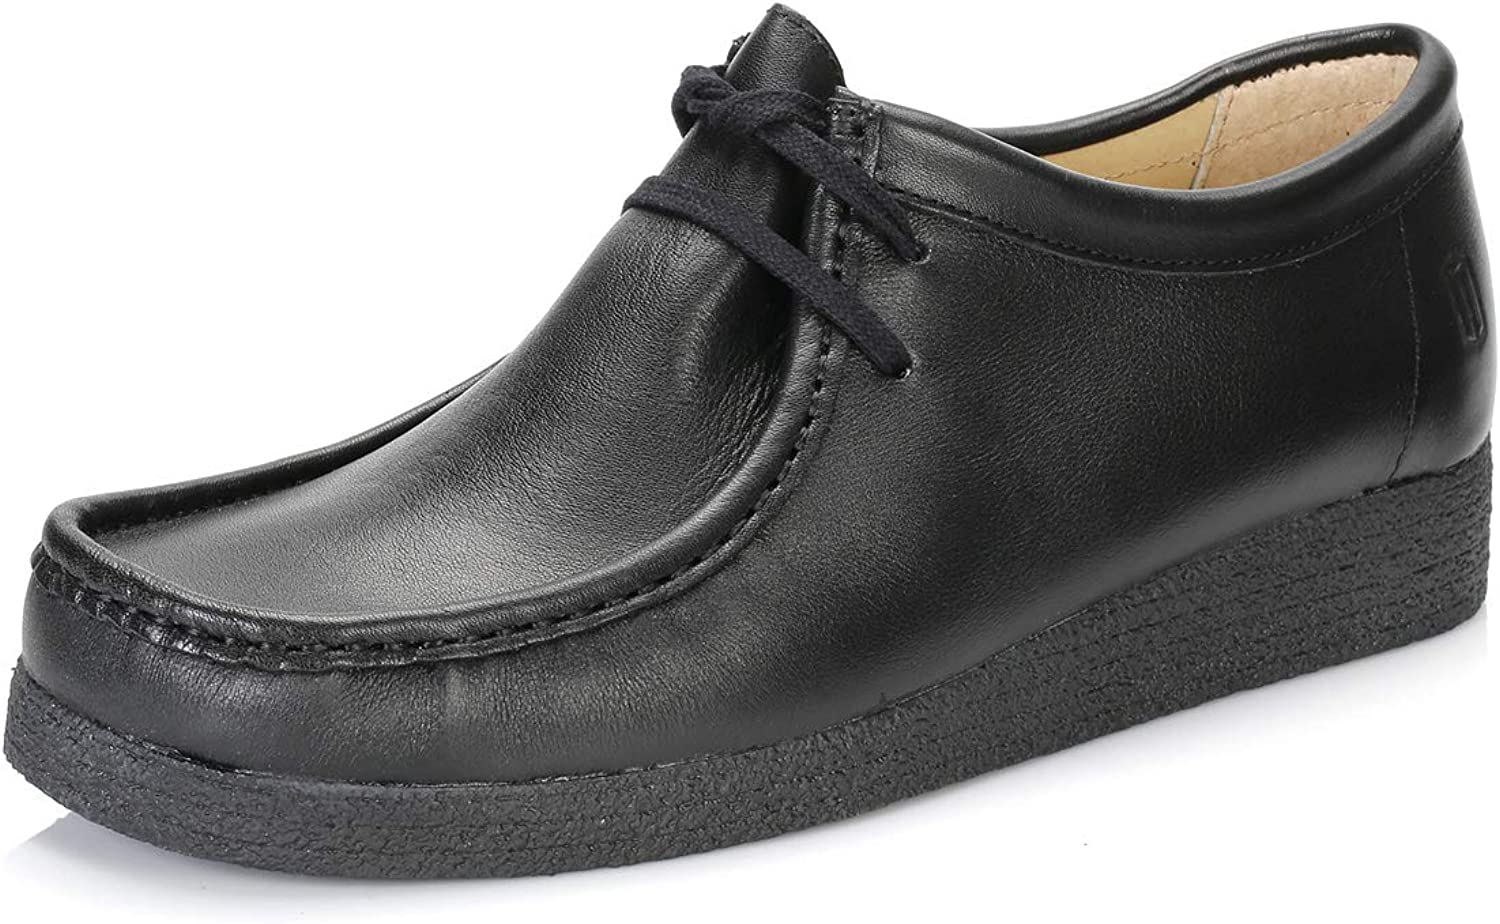 Tower London Black Nappa Leather shoes